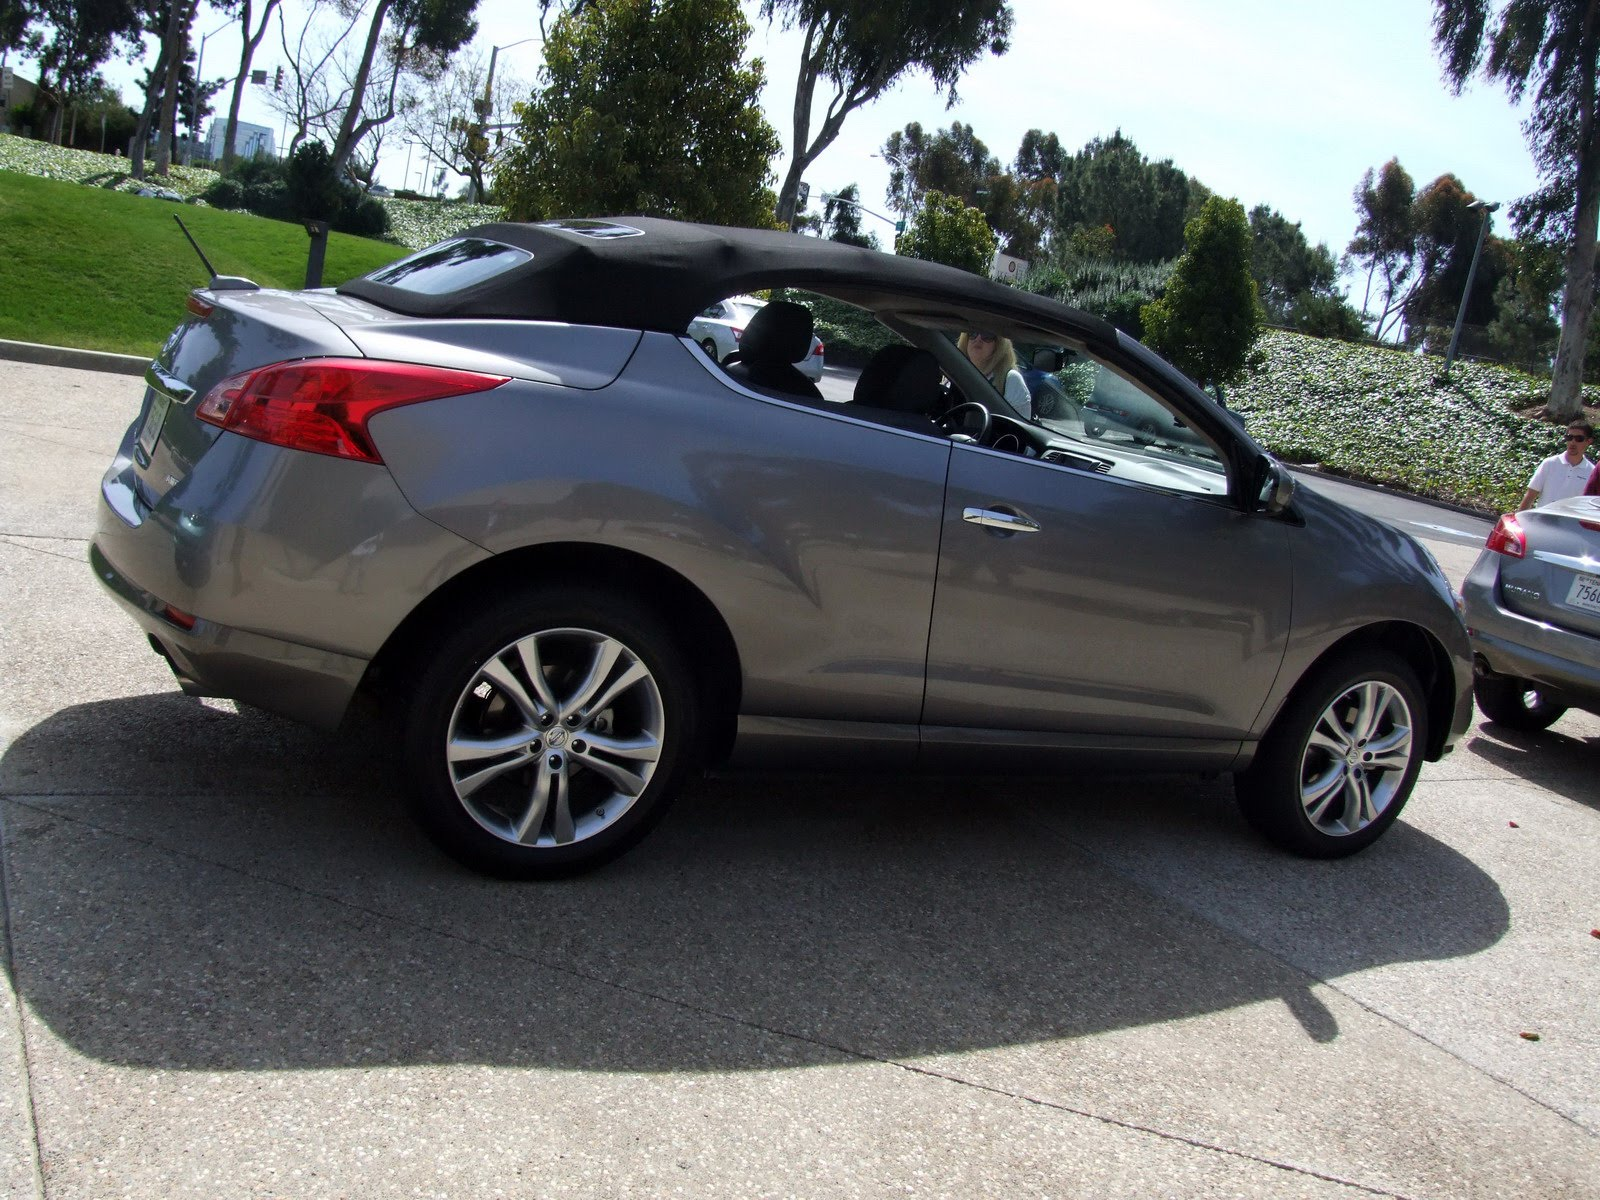 2010 - [Nissan] Murano CrossCabriolet - Page 4 2011-Nissan-Murano-CC-TD-653